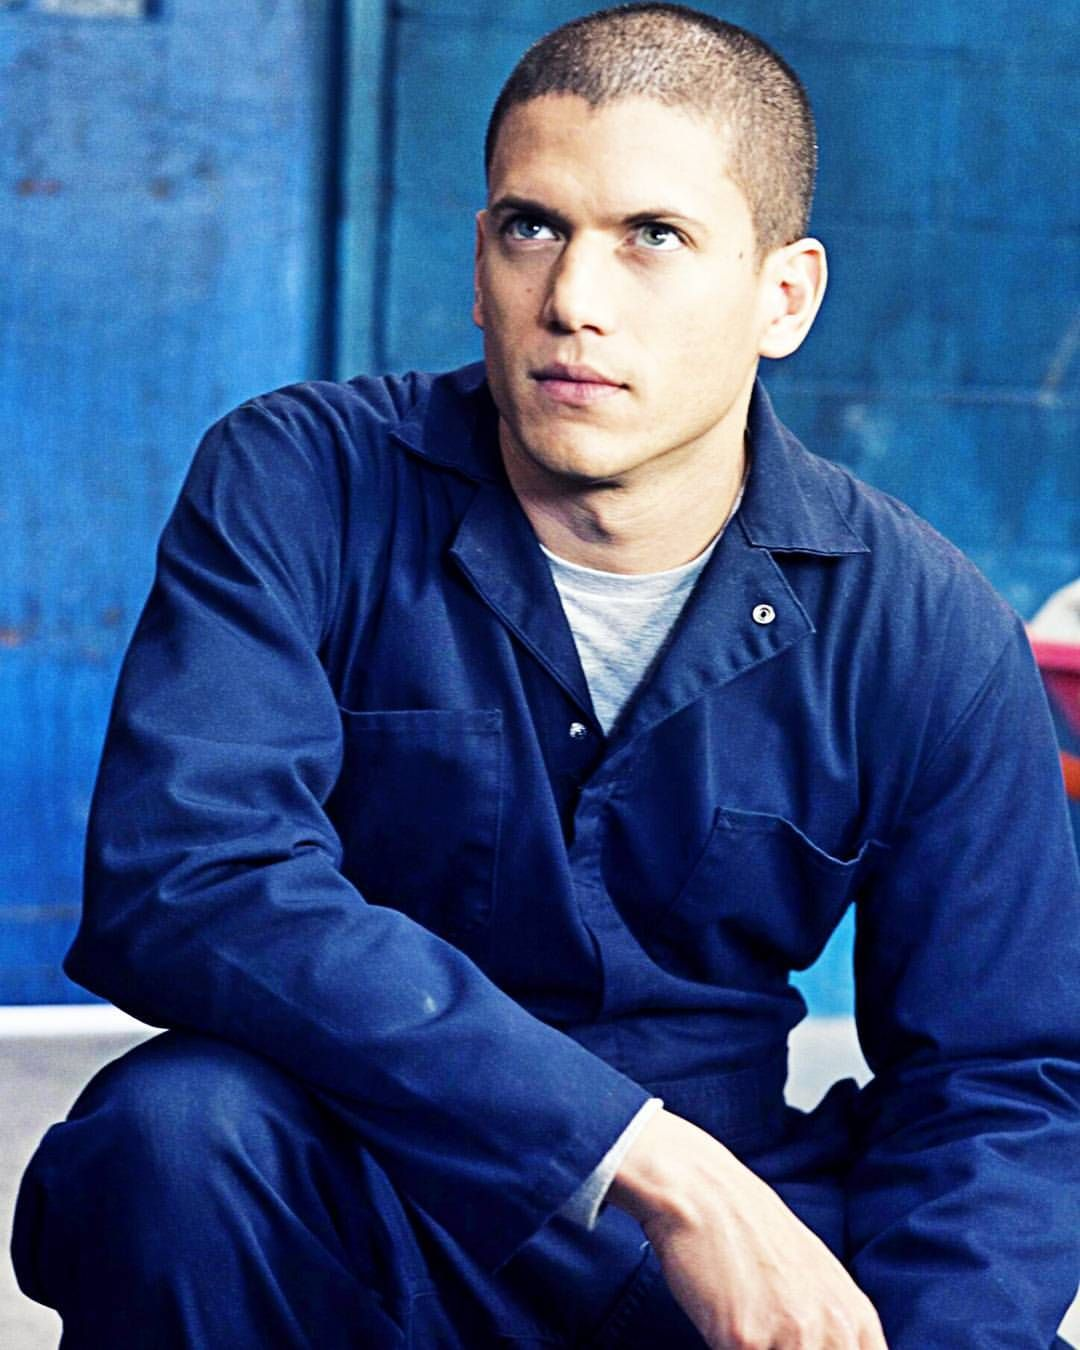 Michael Scofield leaves Prison Break, says it doesn't allow him to play roles as a homosexual